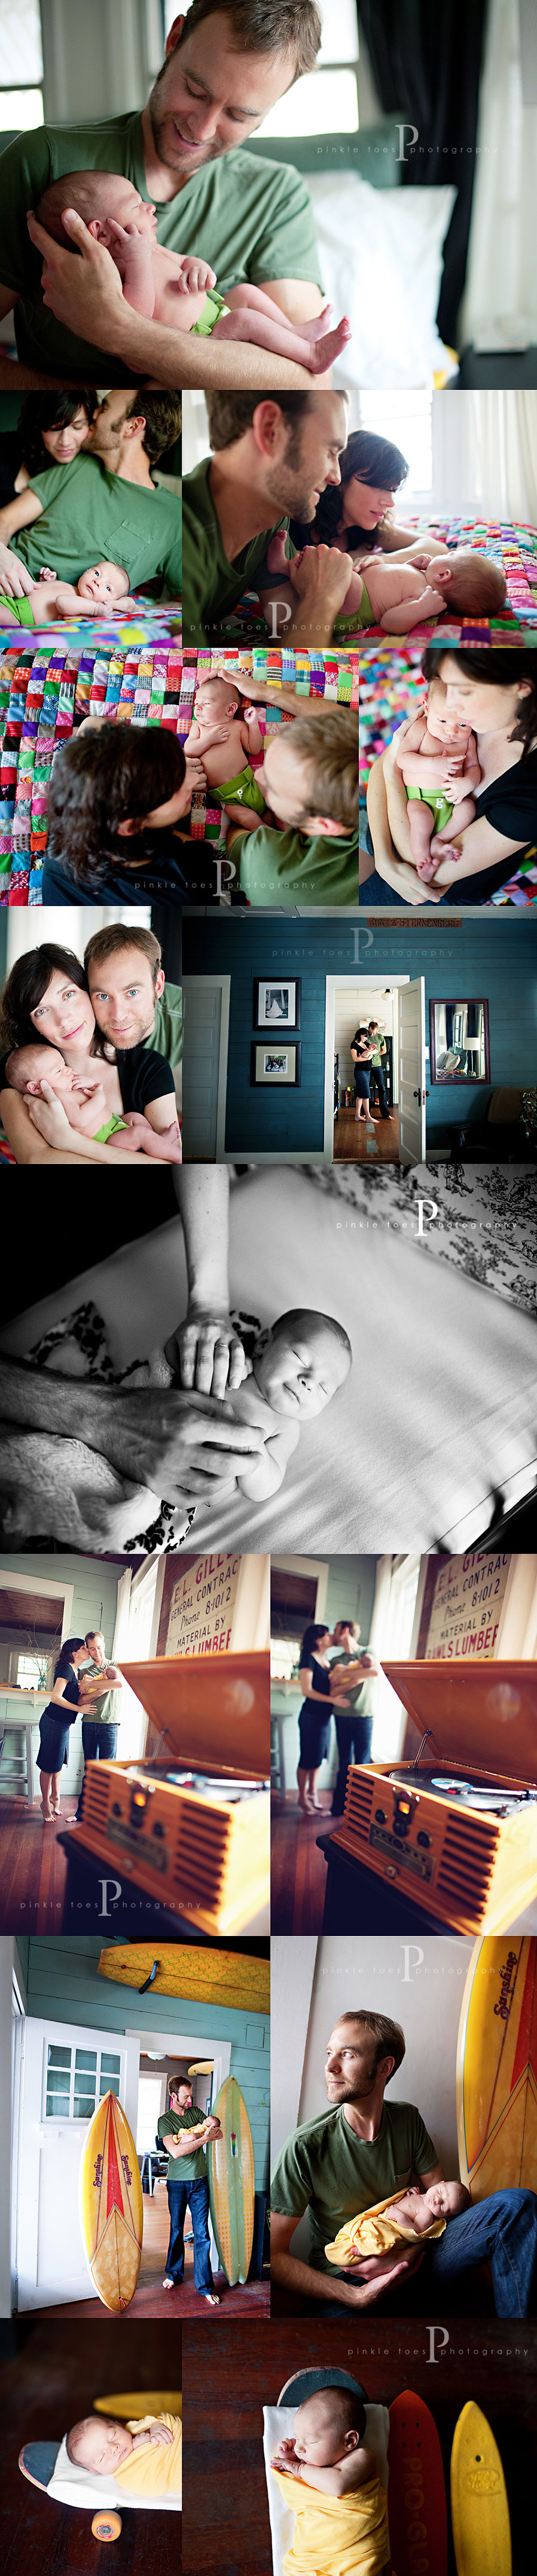 real_austin_lifestyle_newborn_photographer.jpg